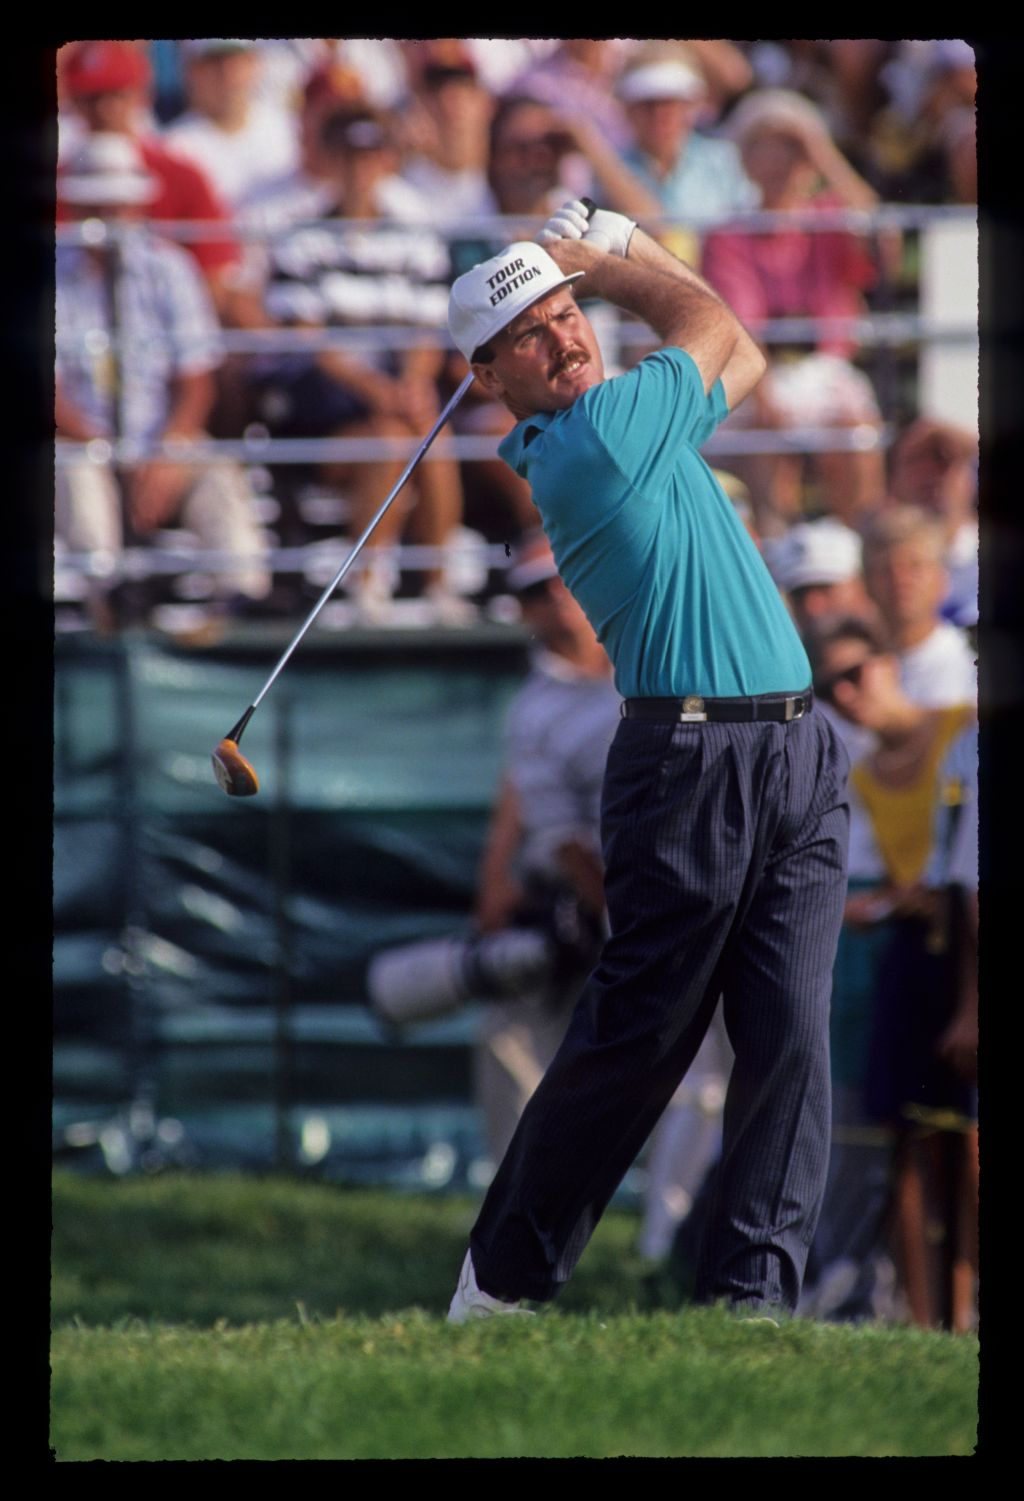 Ronan Rafferty following through on the tee during the 1991 US Open